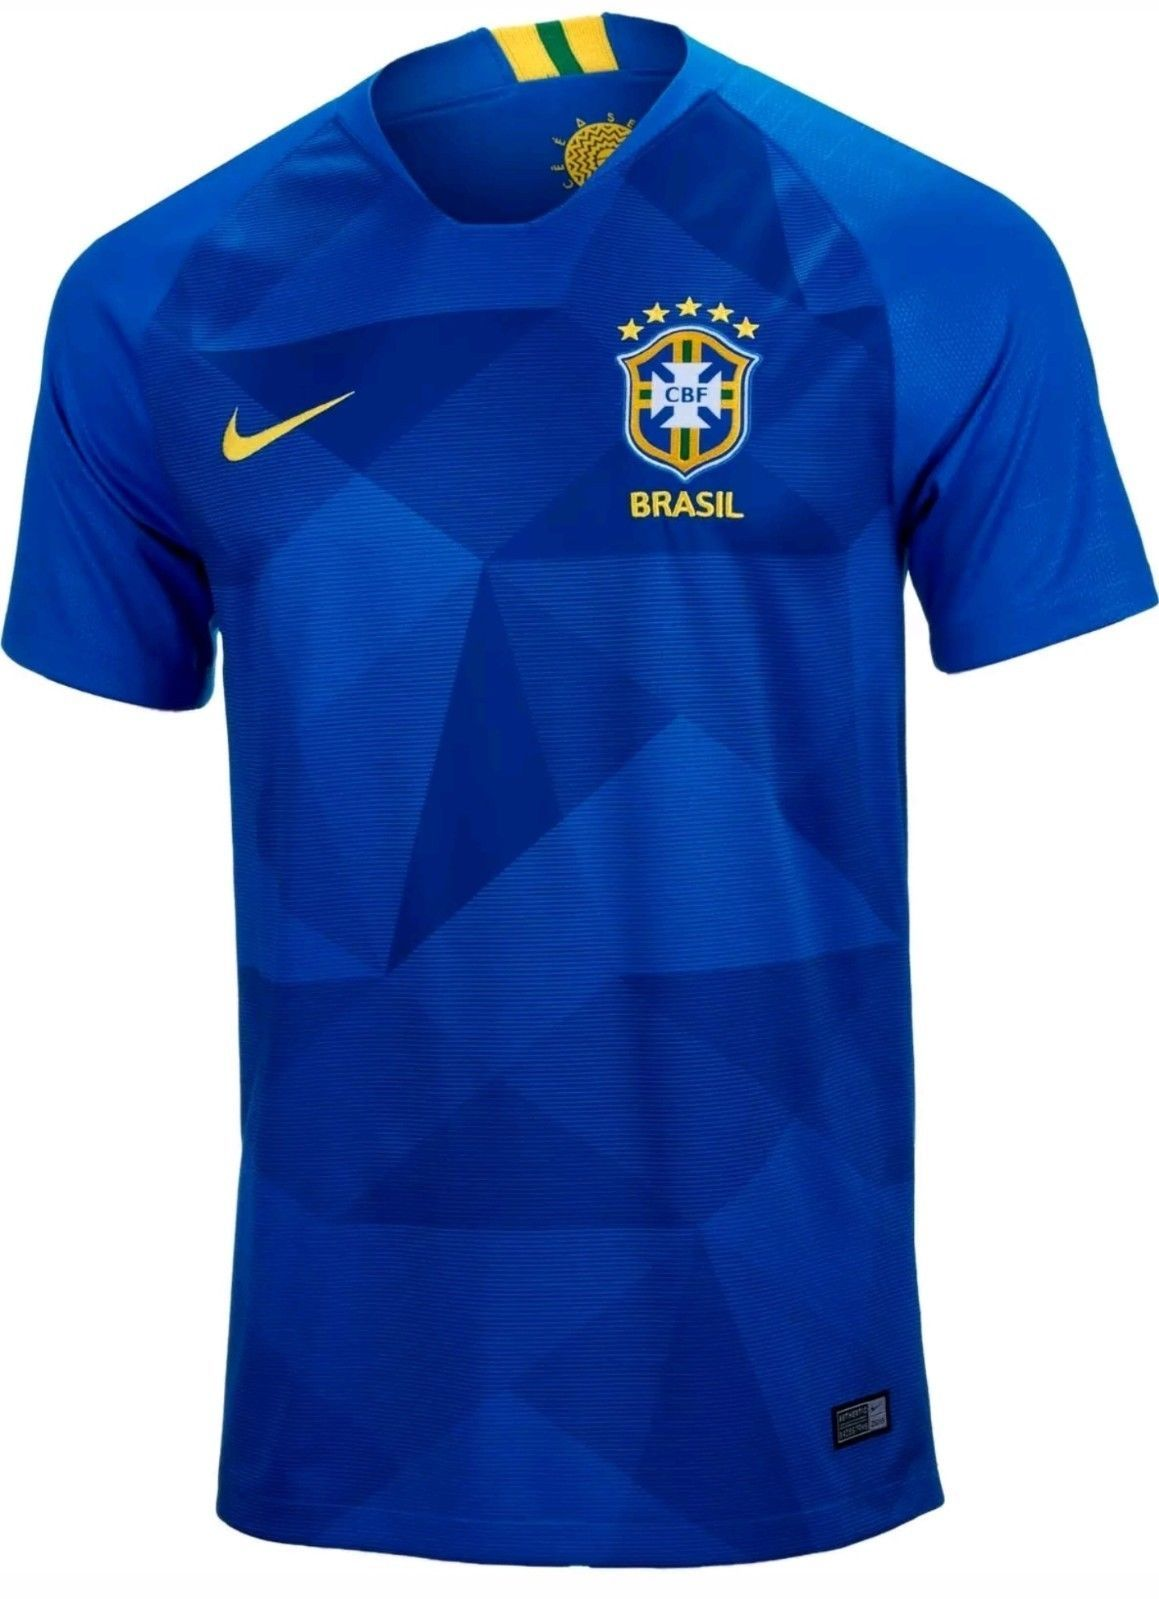 5ef30239c NIKE Breathe 2018 World Cup Brasil Brazil Away Soccer Jersey 893855-453  Size M Discount Price 79.95 Free Shipping Buy it Now